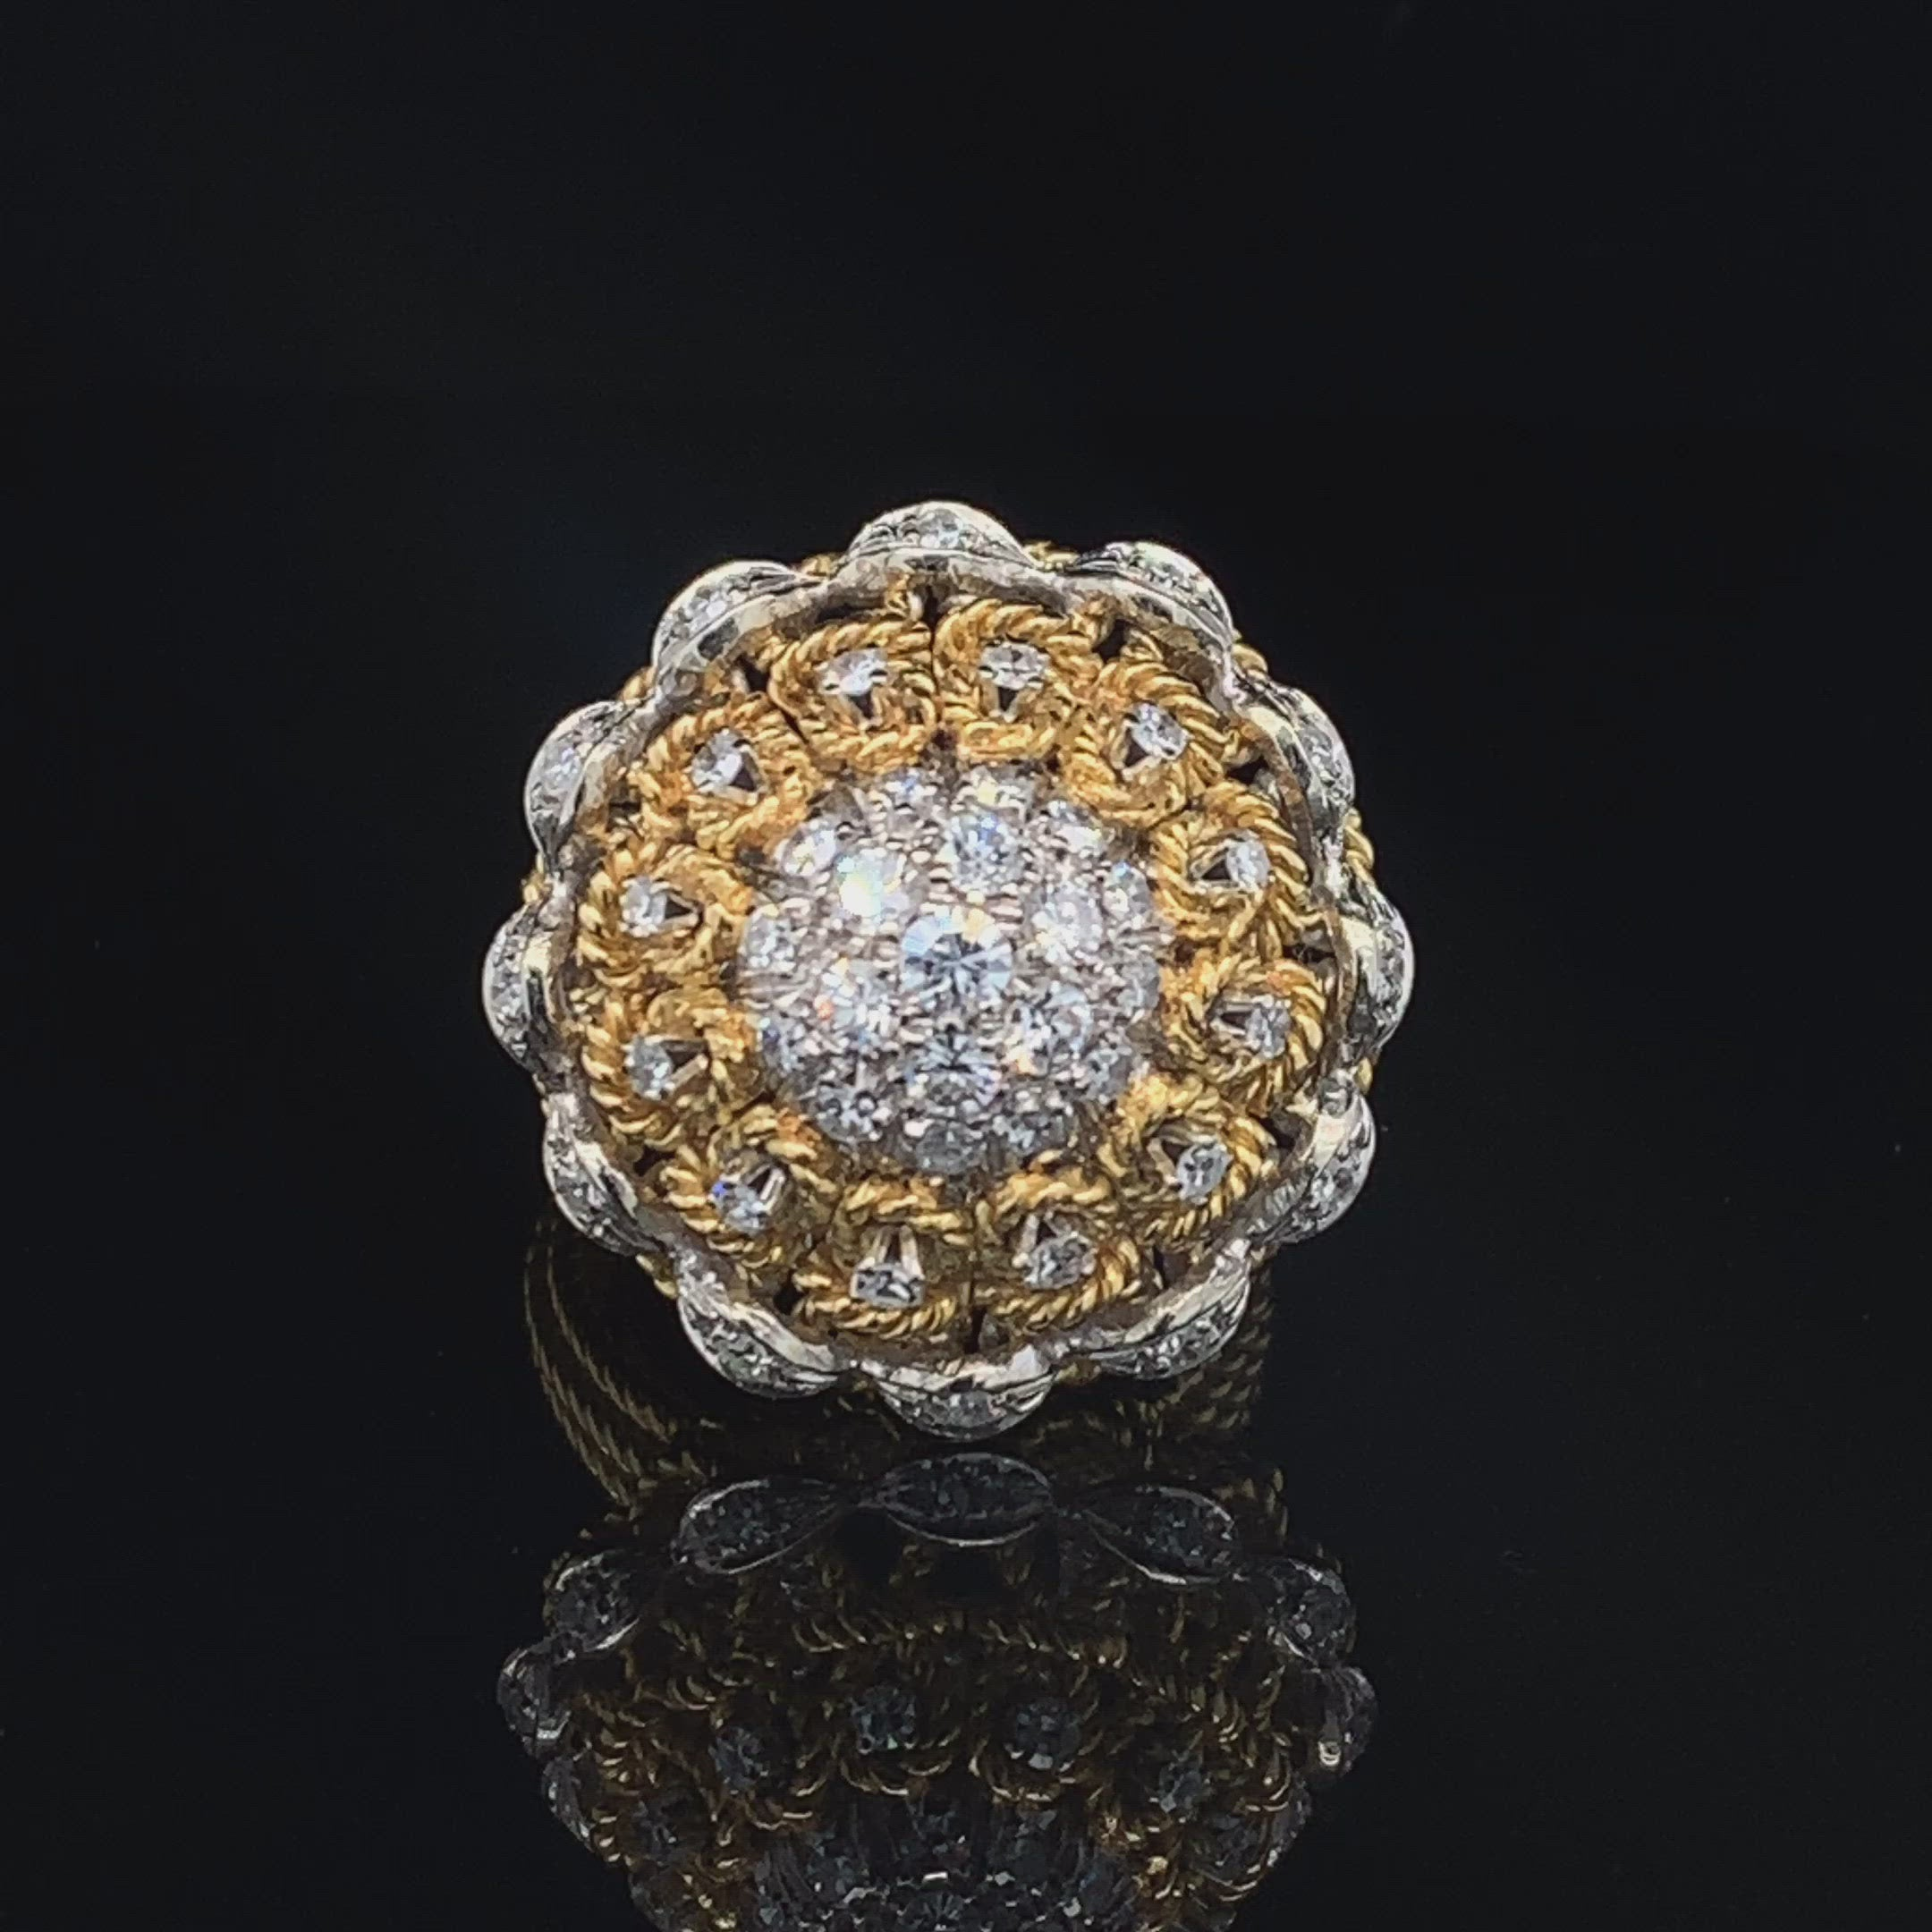 1.50CTTW DIAMONDS IN 18K GOLD RING AT REGARD JEWELRY IN AUSTIN, TX.